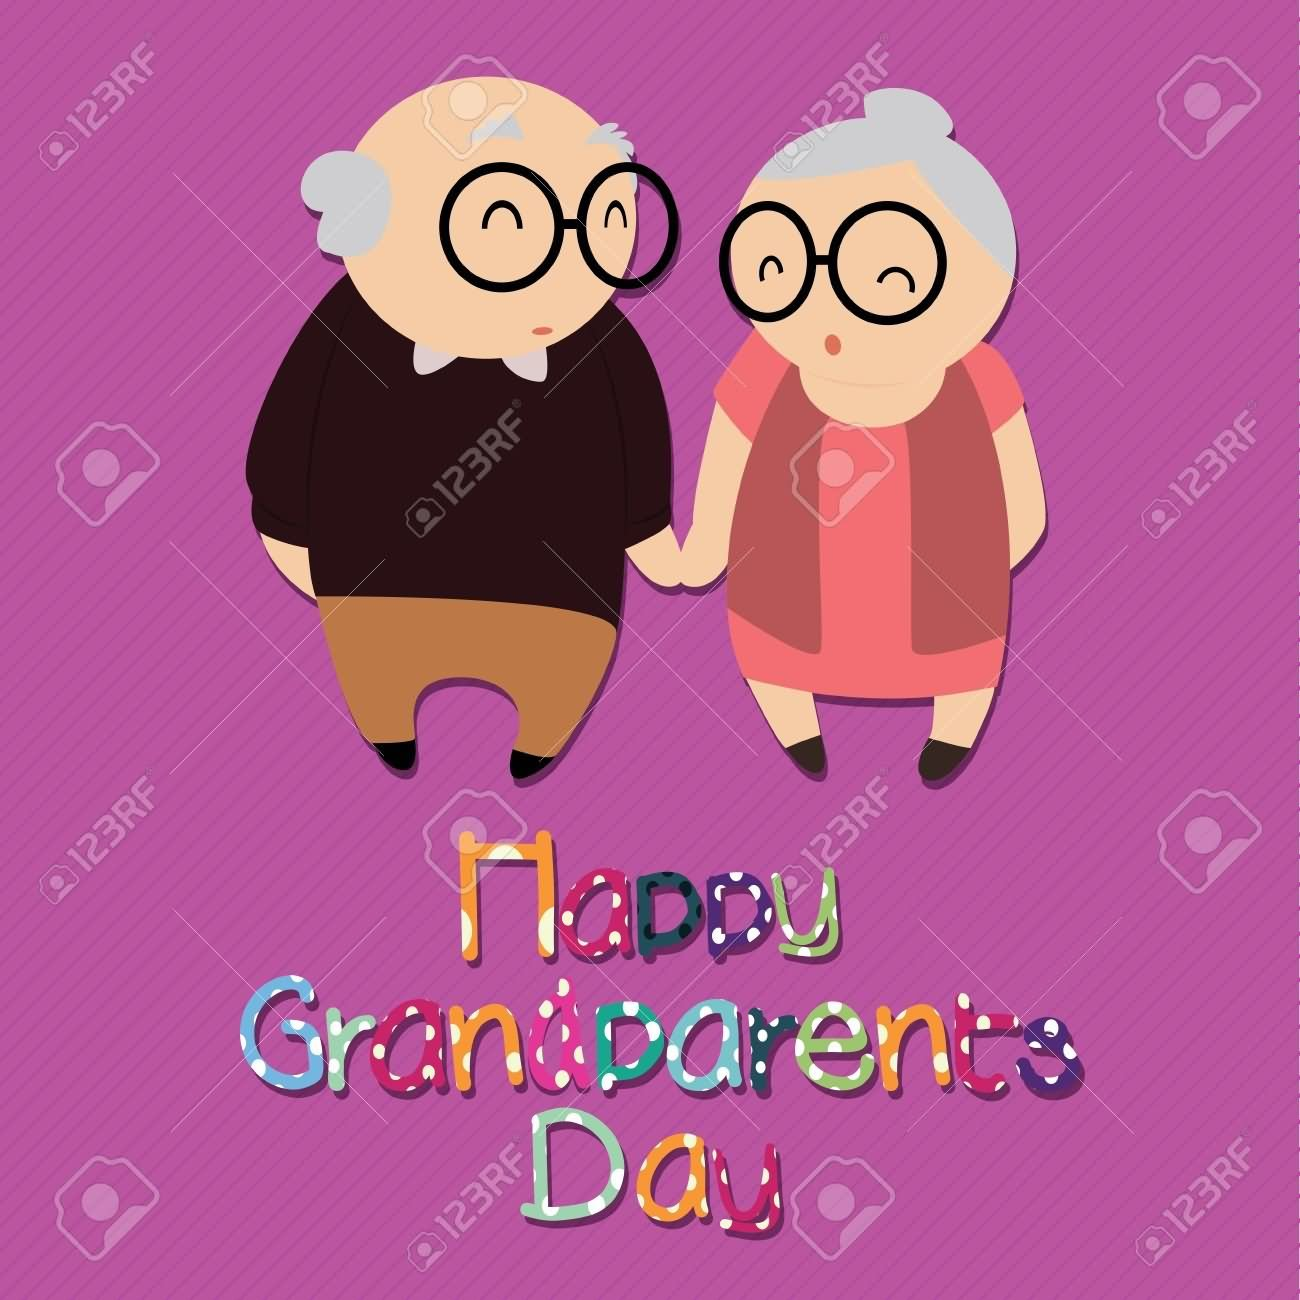 35 most beautiful grandparents day greeting card images happy grandparents day old couple greeting card kristyandbryce Gallery